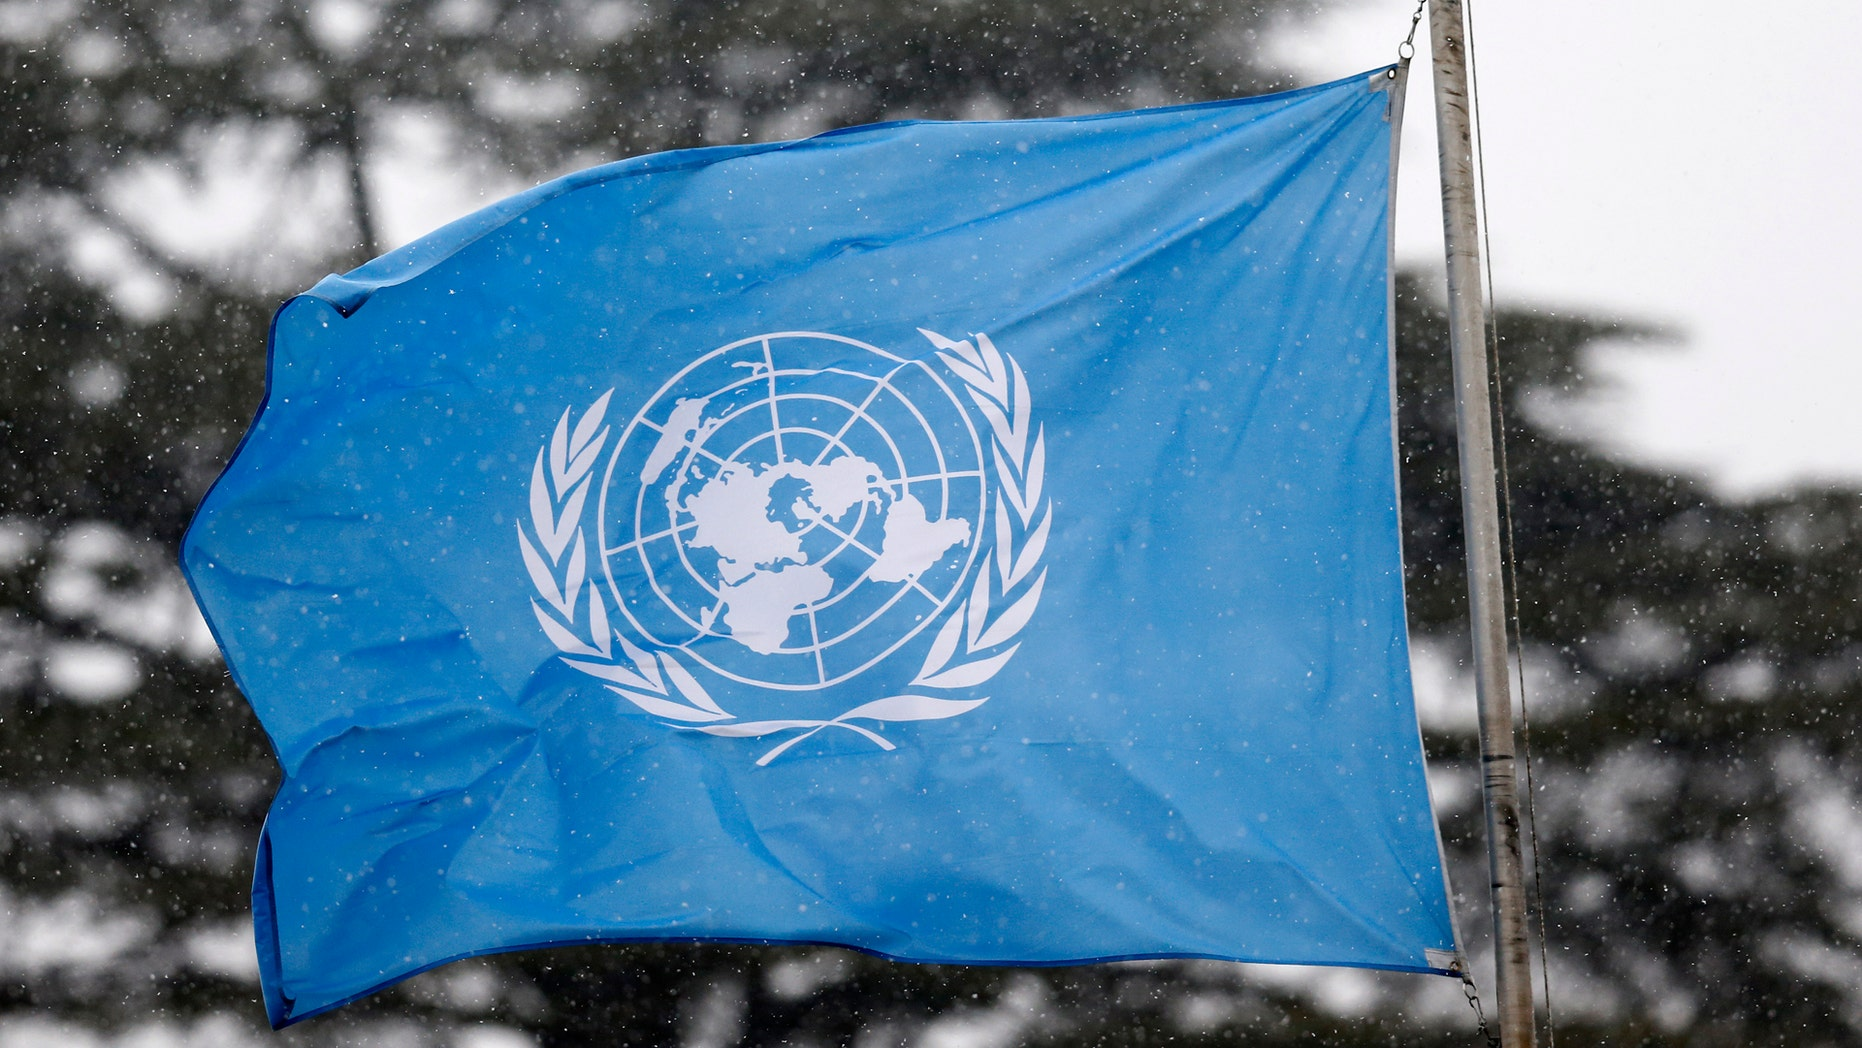 A United Nations flag flies outside the the European headquarters of the United Nations ahead of new round of meetings for the Syria talks in Geneva, Switzerland, March 16, 2016. (REUTERS/Denis Balibouse)